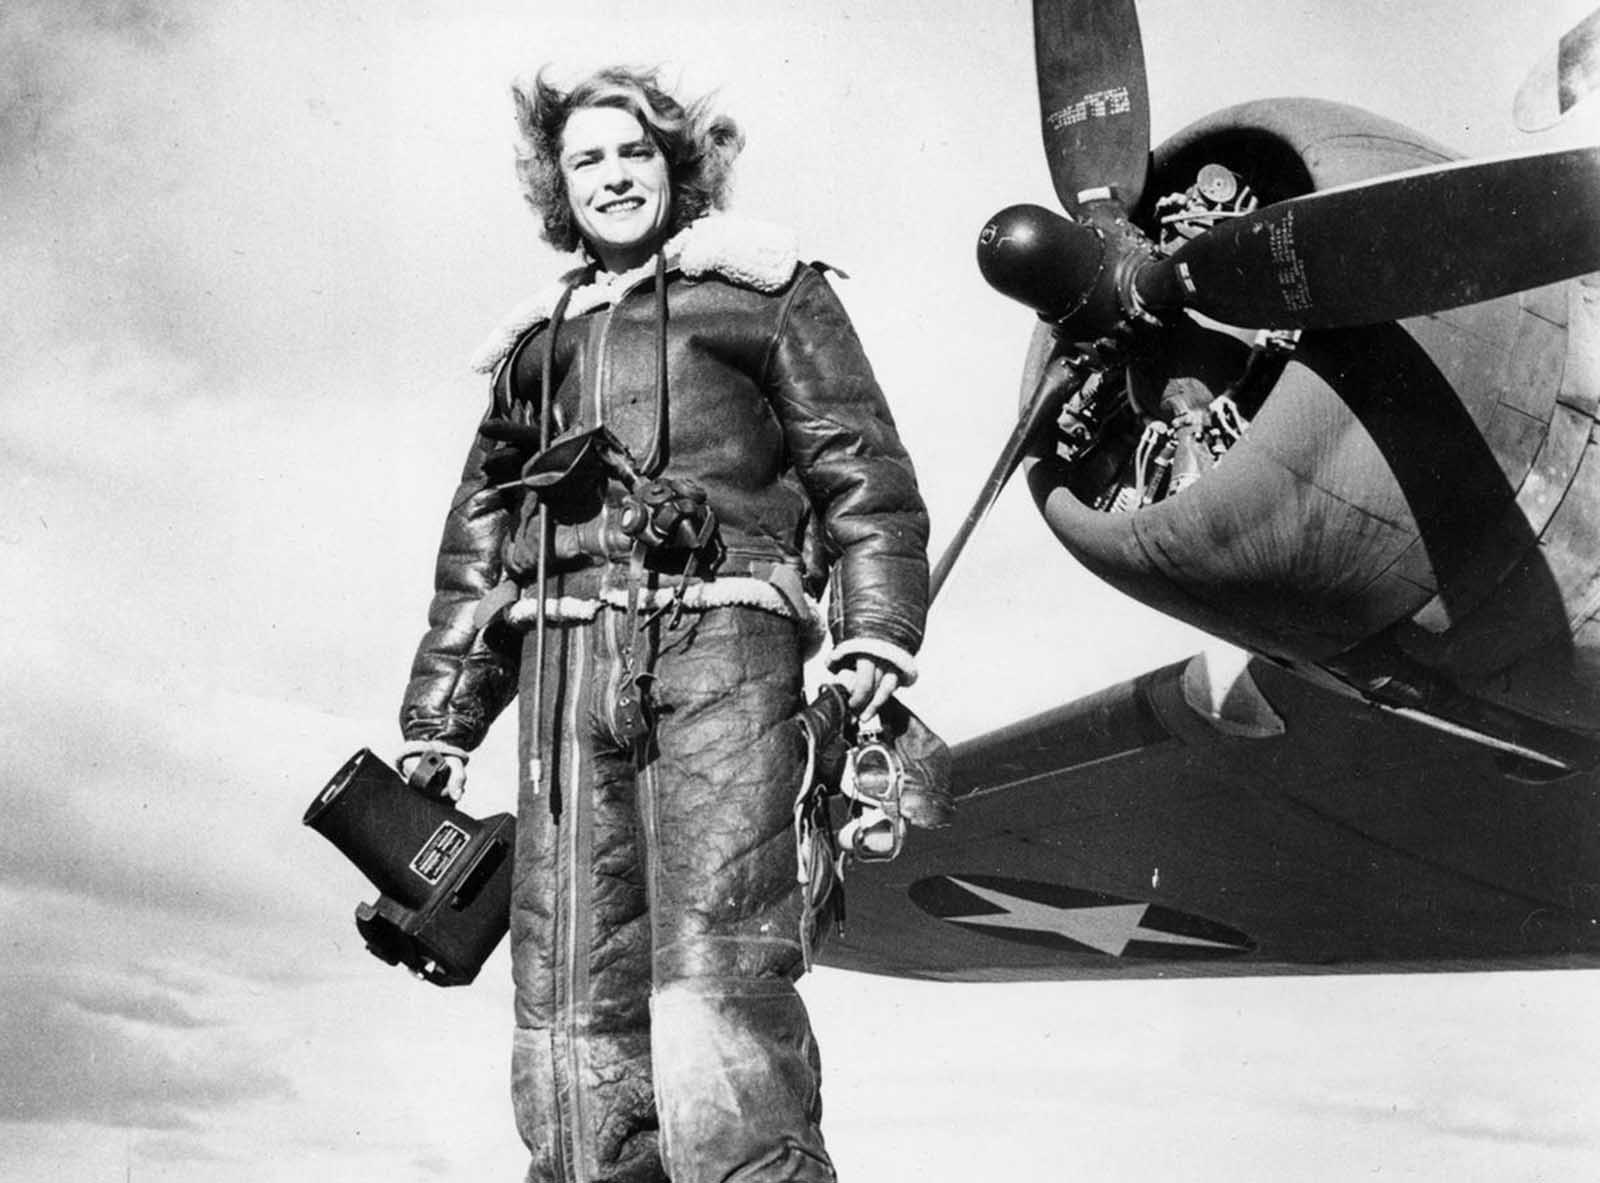 Life magazine photojournalist Margaret Bourke-White wears high-altitude flying gear in front of an Allied Flying Fortress airplane during a World War II assignment in February 1943.